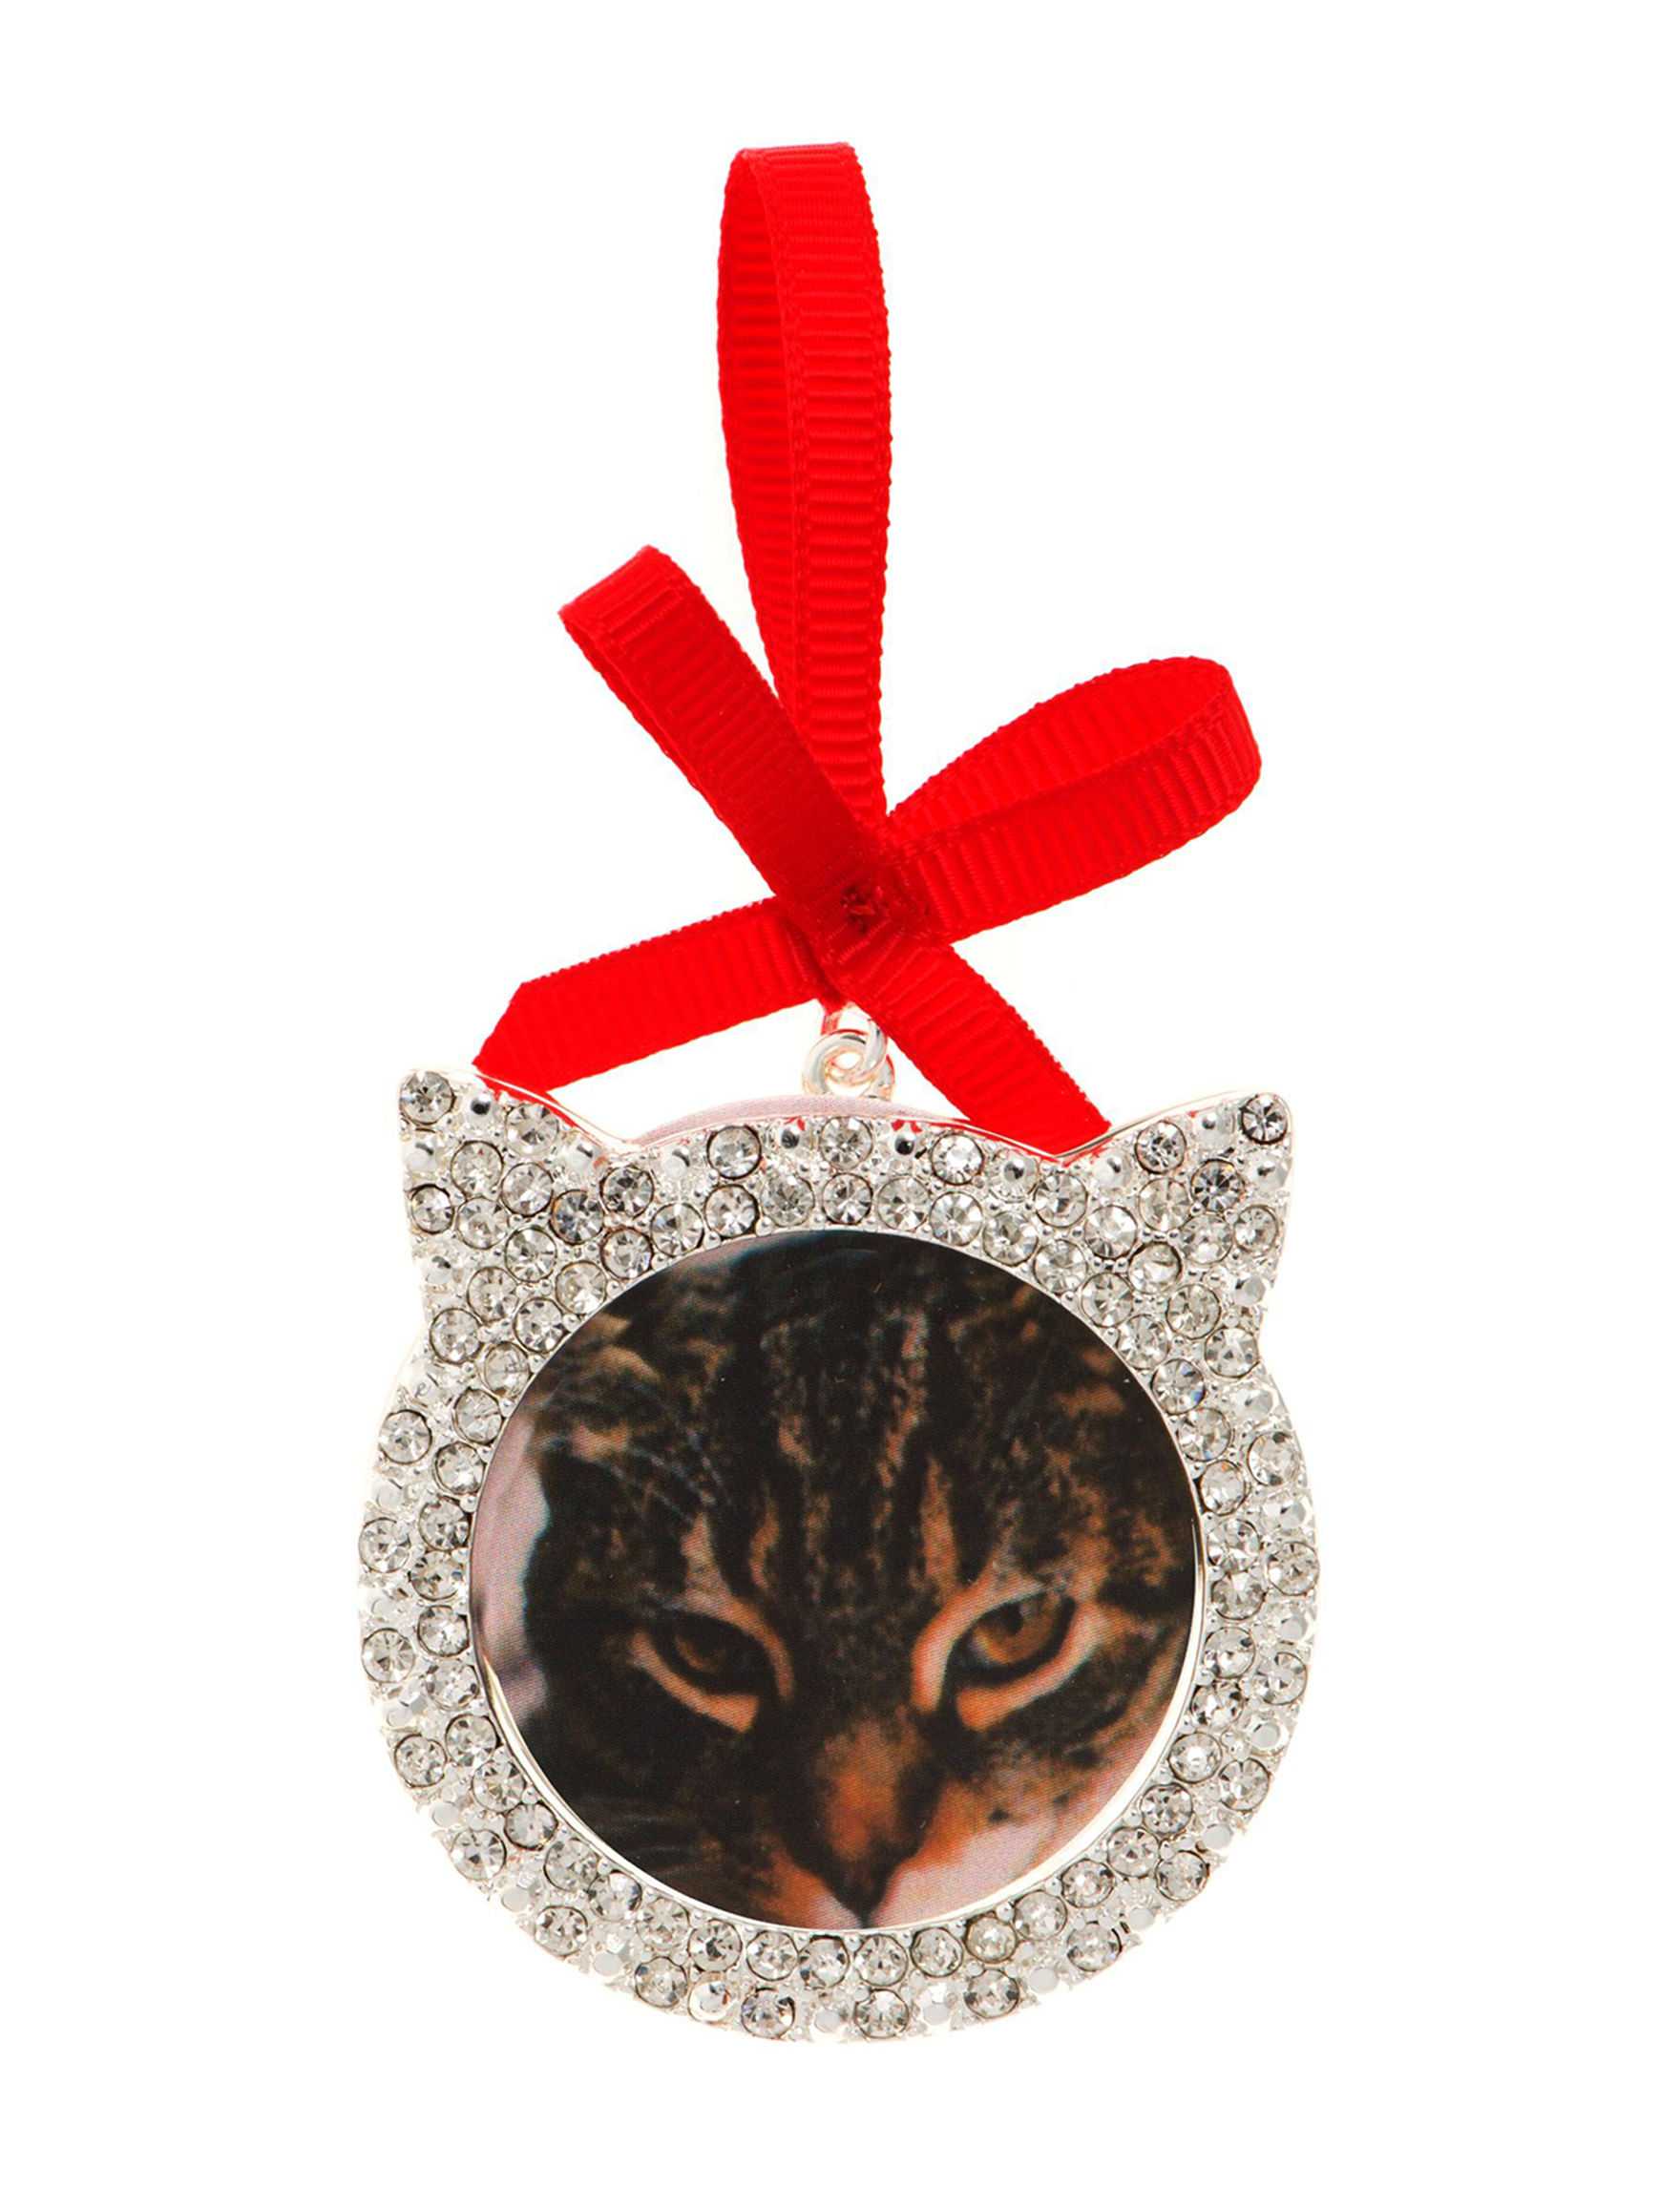 Pet Friends Silver / Crystal Pins Fashion Jewelry